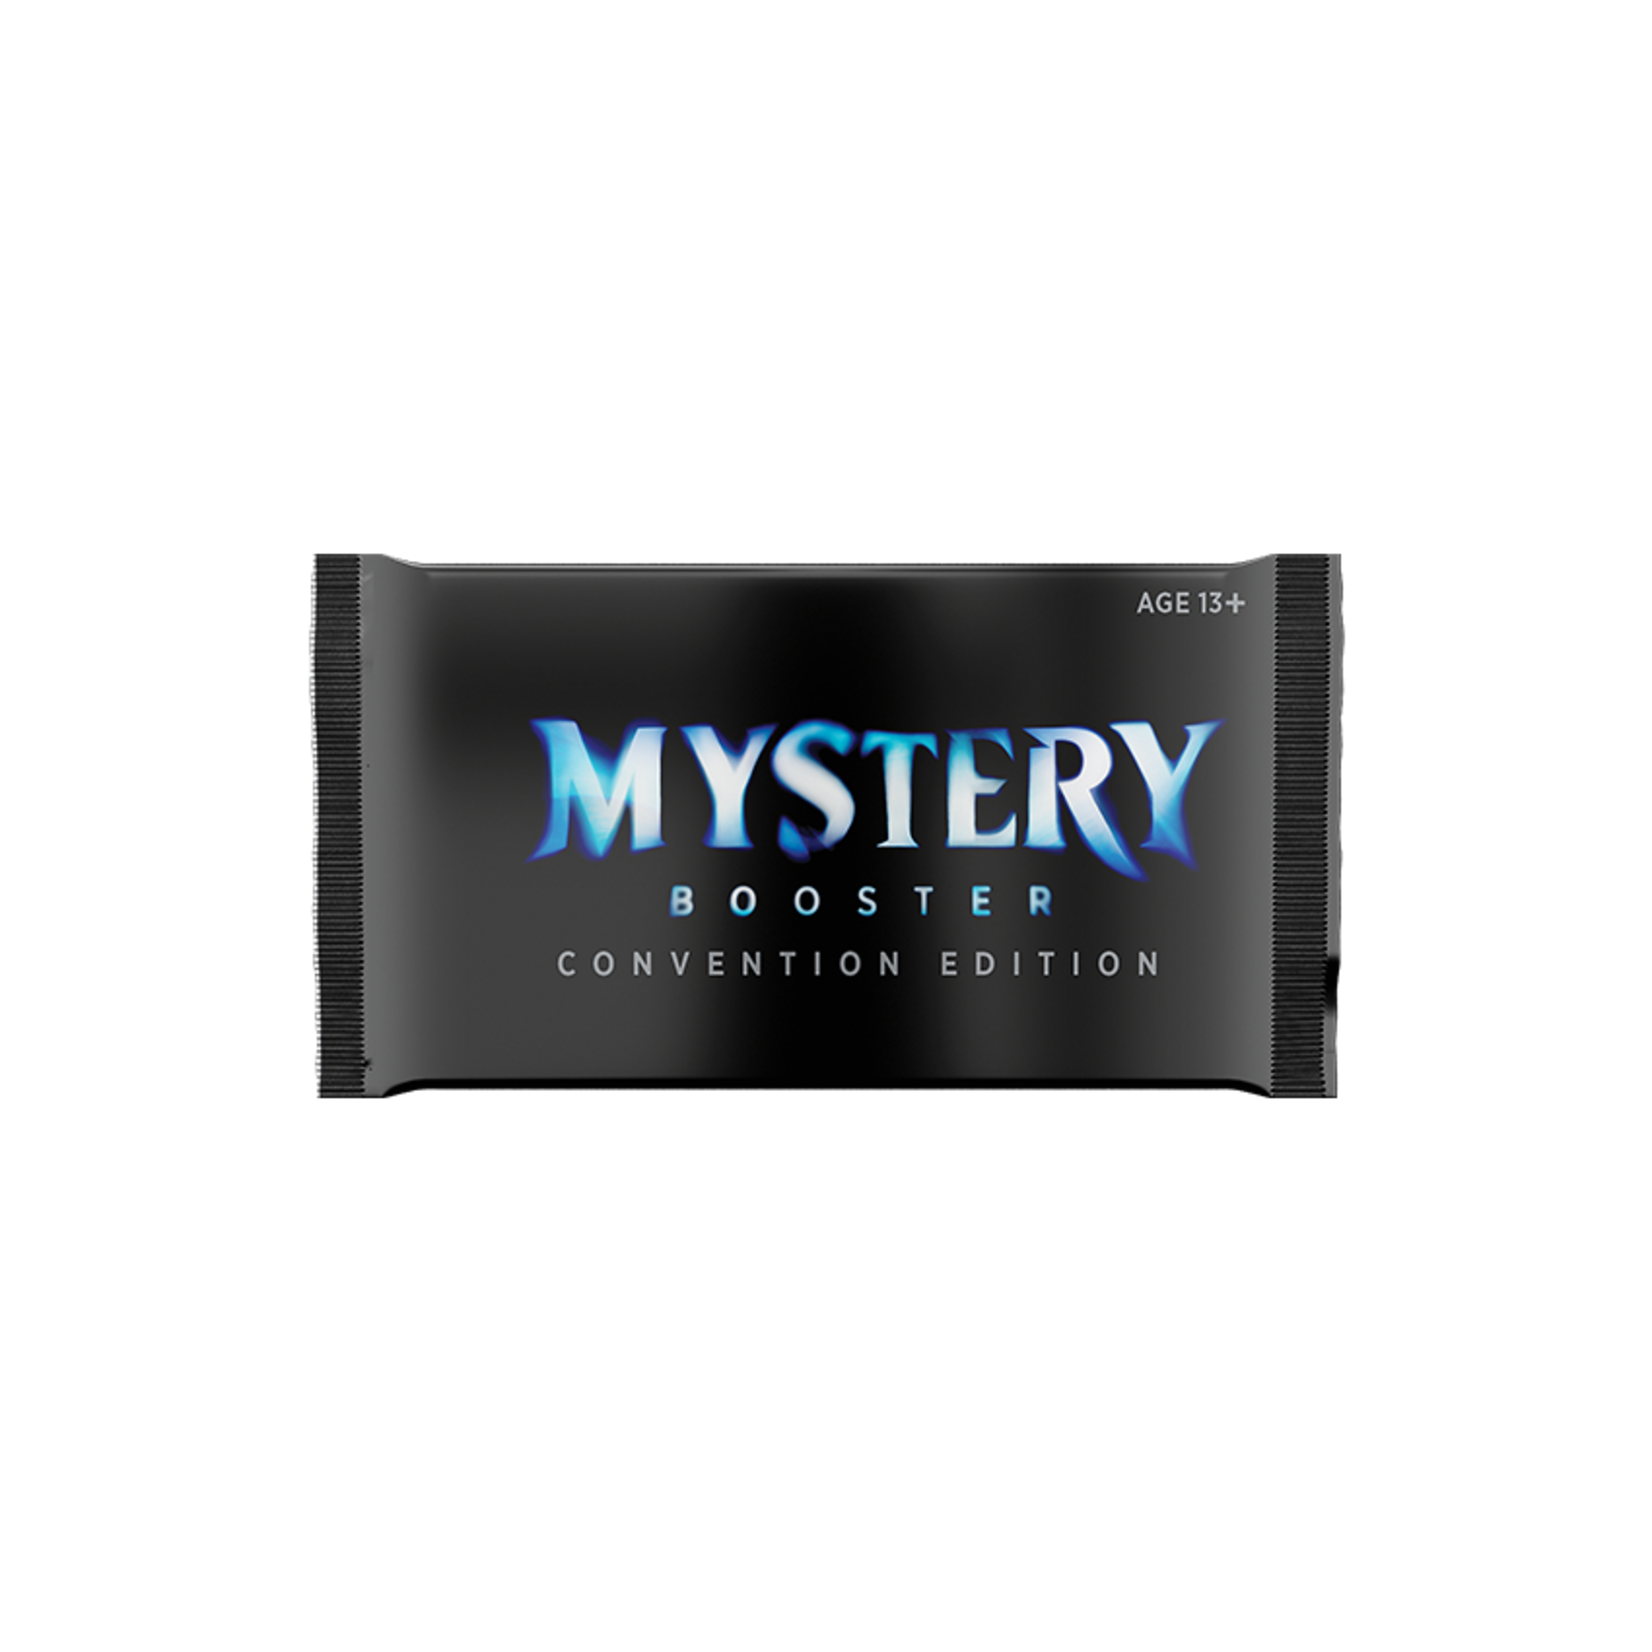 Wizards of the Coast Draft FNM: Mystery Booster Convention Edition - August 20, 7 PM (Downers Grove)